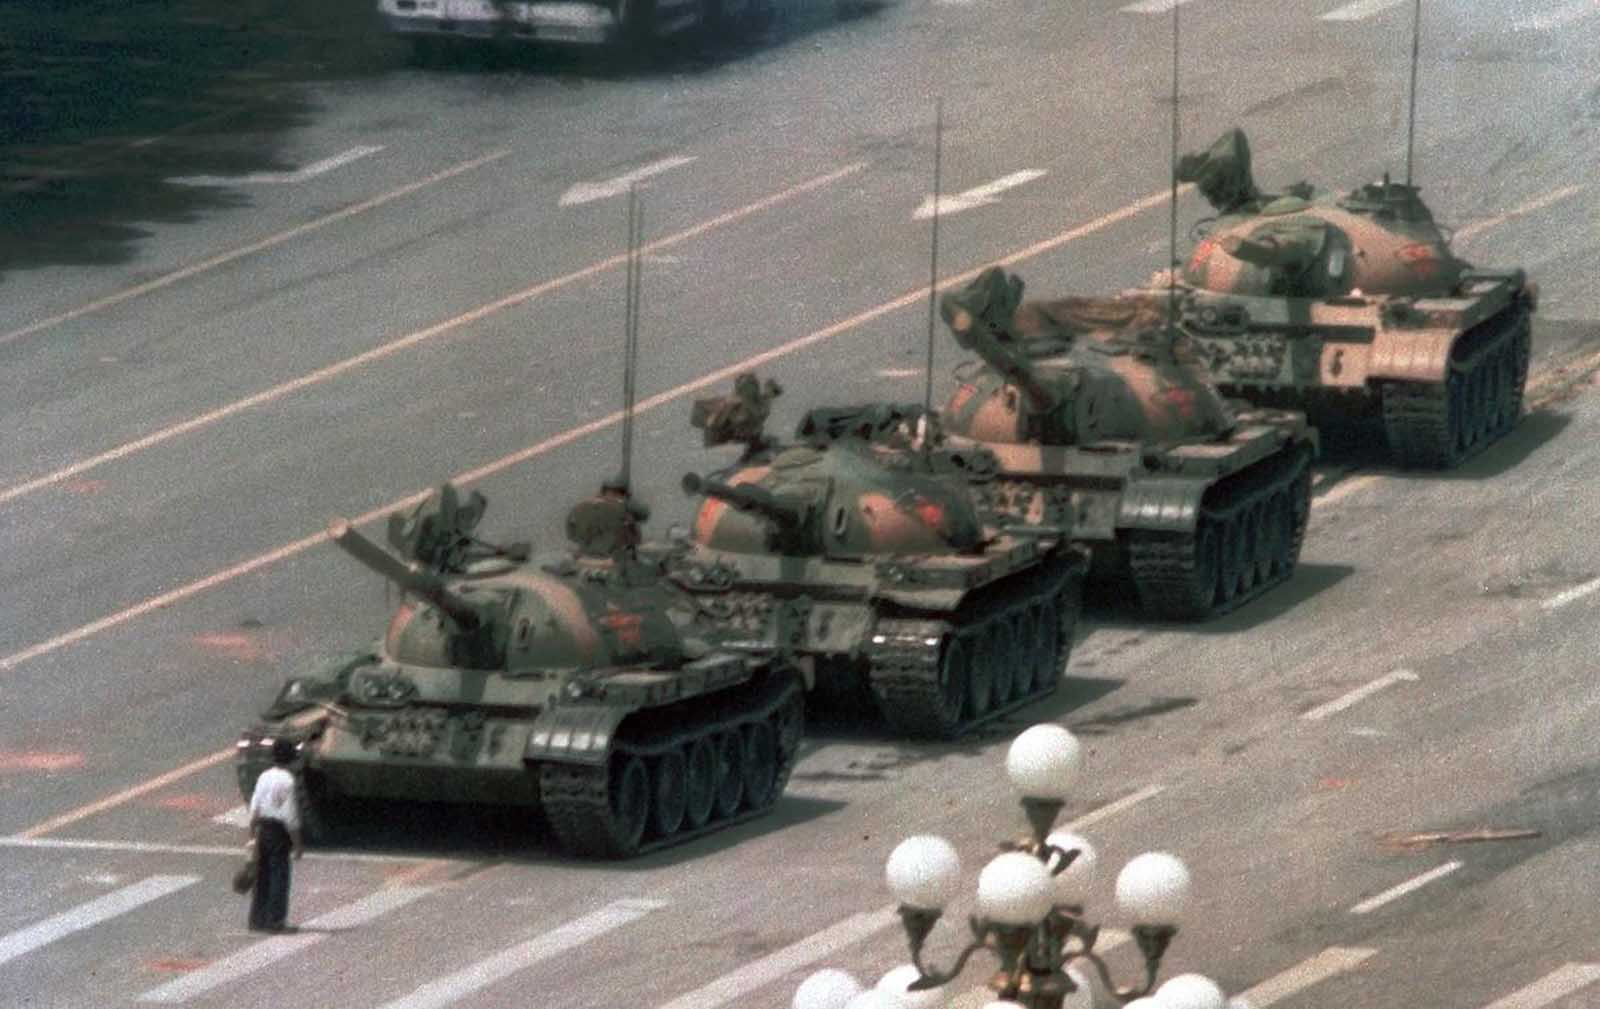 A Chinese man stands alone to block a line of tanks heading east on Beijing's Cangan Boulevard in Tiananmen Square, on on June 5, 1989. The man, calling for an end to violence and bloodshed against pro-democracy demonstrators, was pulled away by bystanders, and the tanks continued on their way.